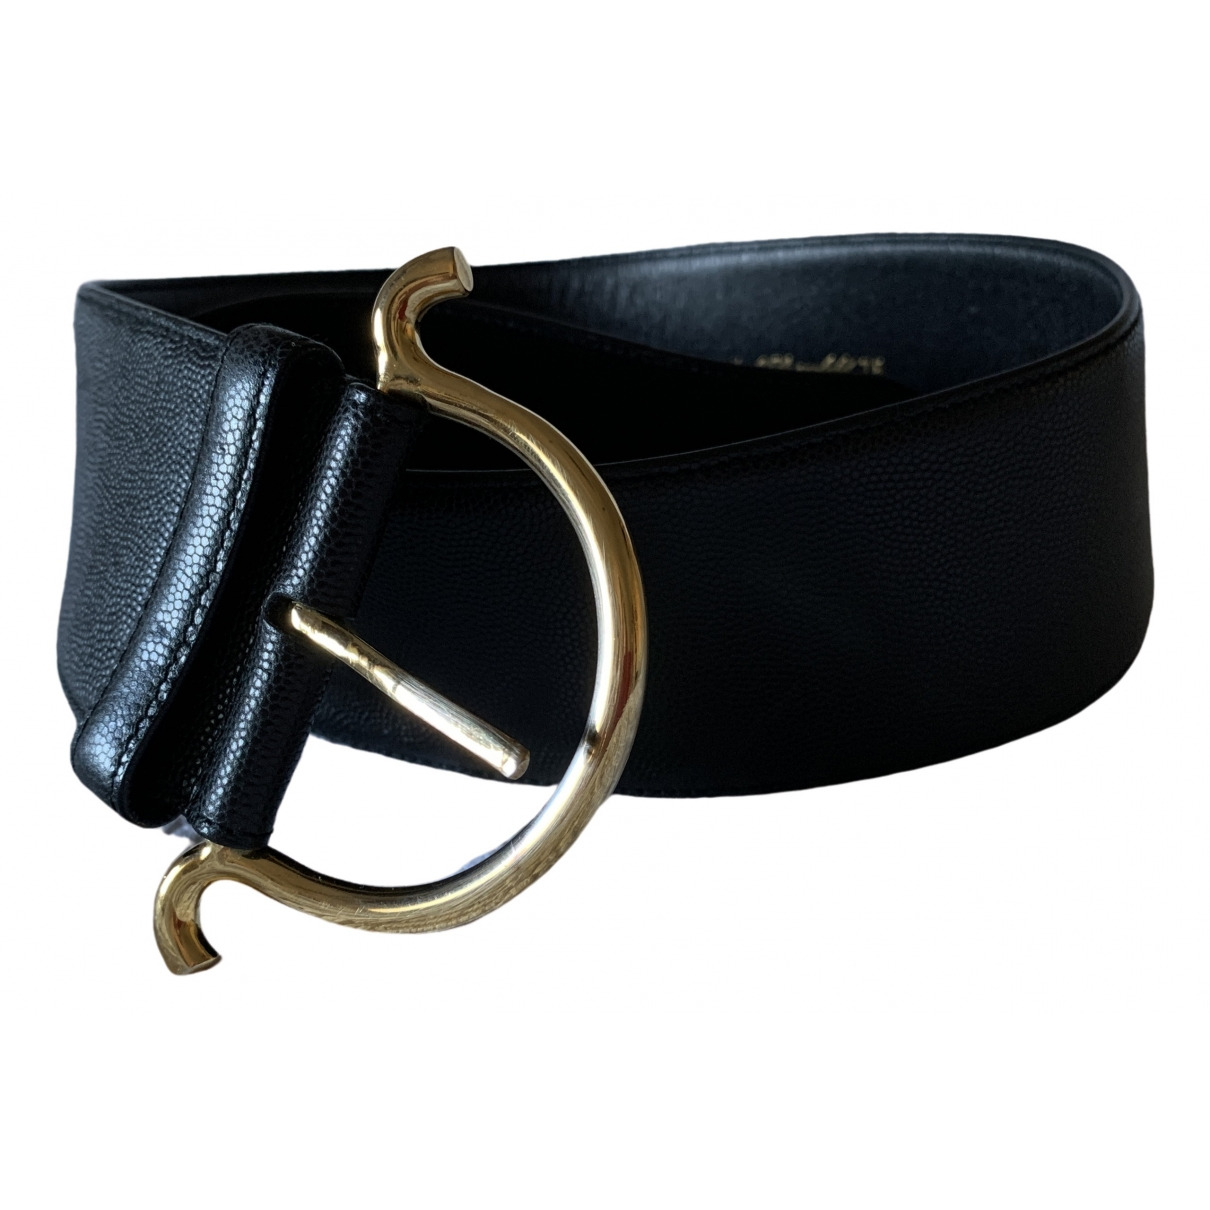 Karl Lagerfeld \N Black Leather belt for Women 75 cm